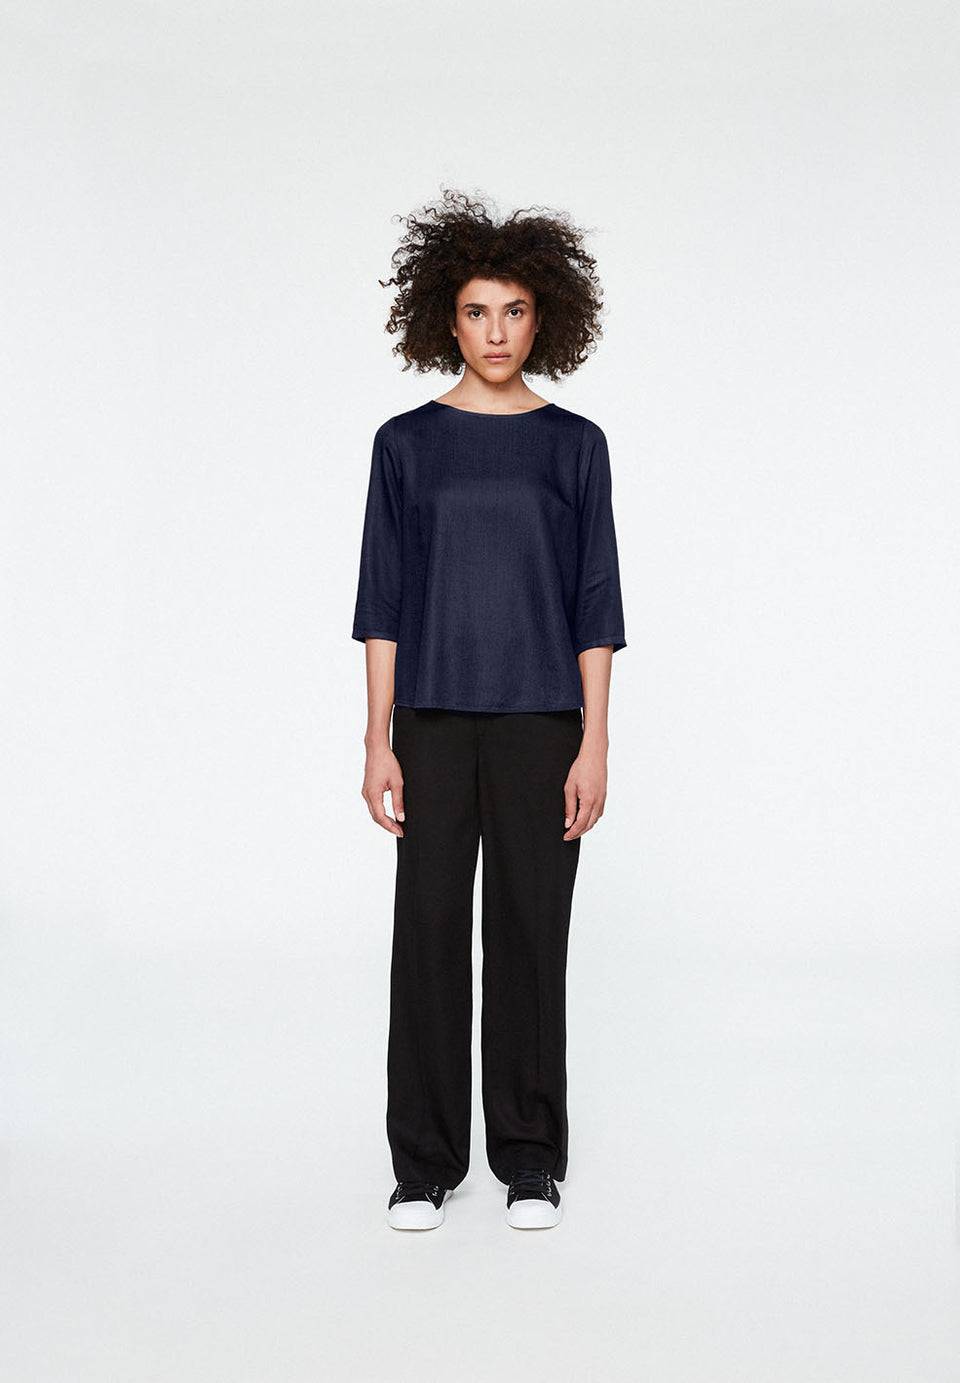 Heddaa Bow Blouse in Dark Navy